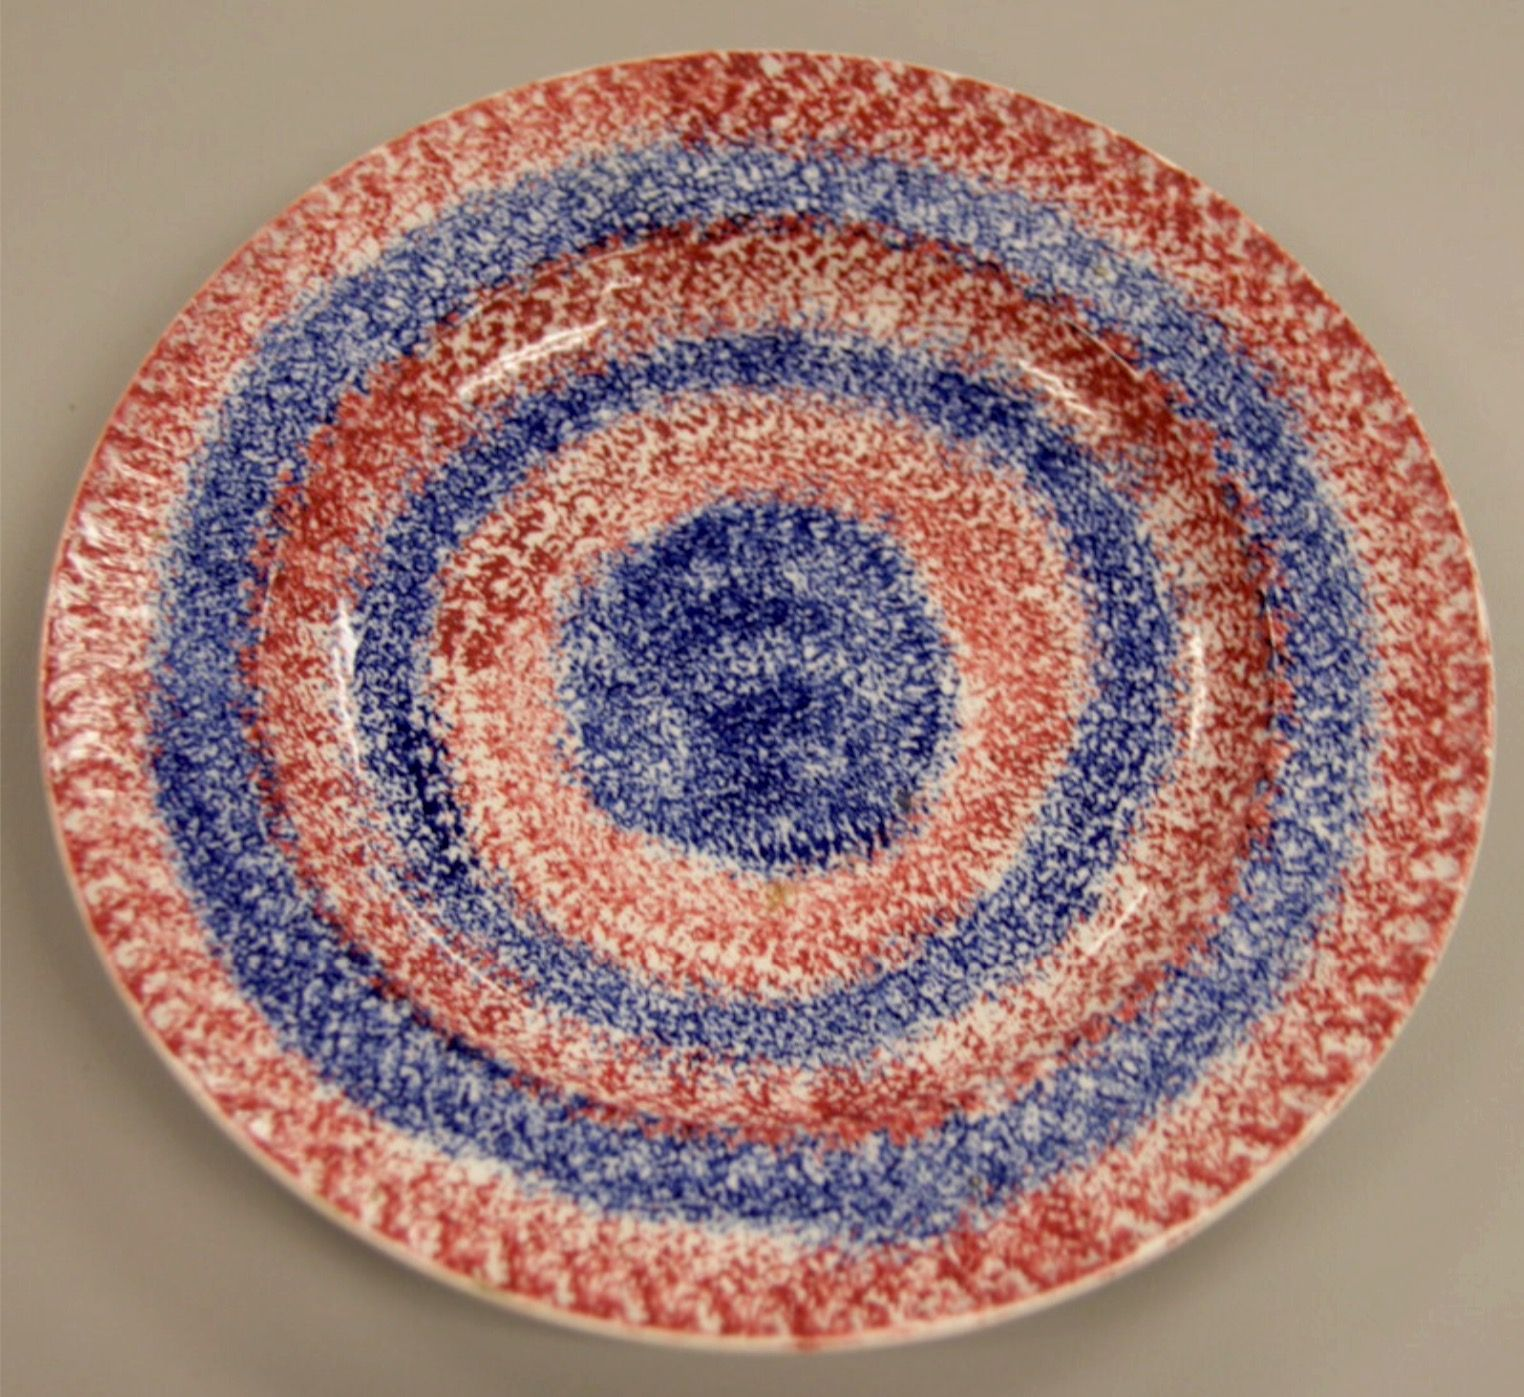 Two Color Red And Blue Rainbow Spatterware 8 1 4 Inch Plate In A Bulls Eye Pattern In